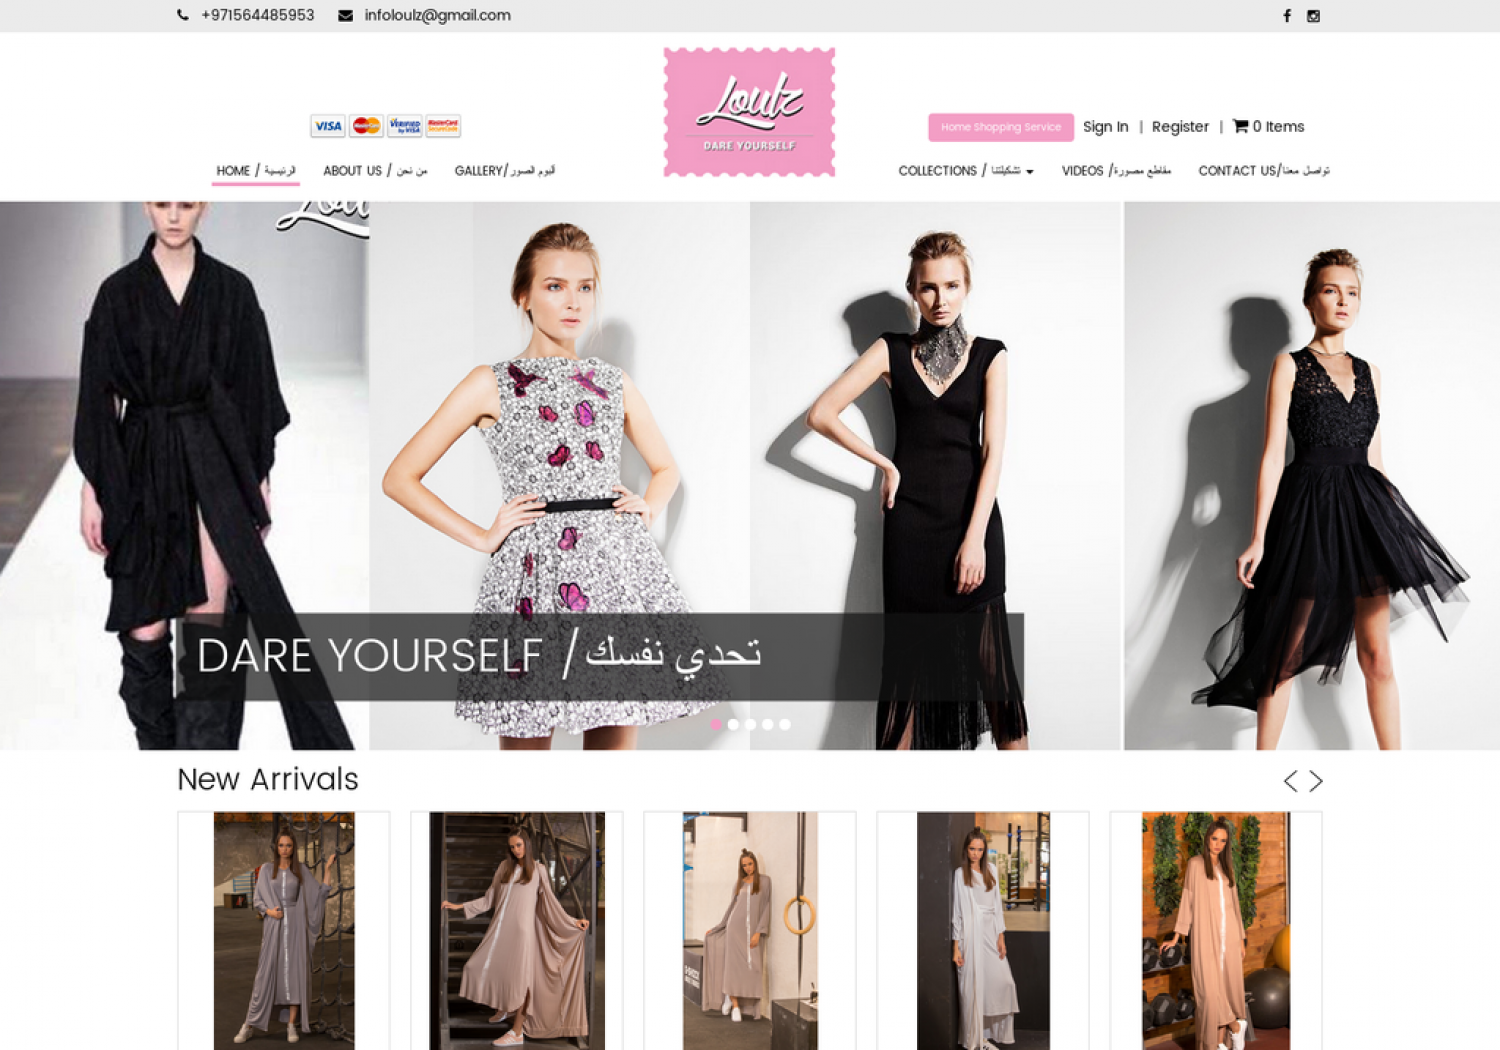 Loulz-Dubai based multi-brand concept store offering high-quality, edgy and independent fashion brands around the world. Each item at Loulz is individually hand-picked. Infographic